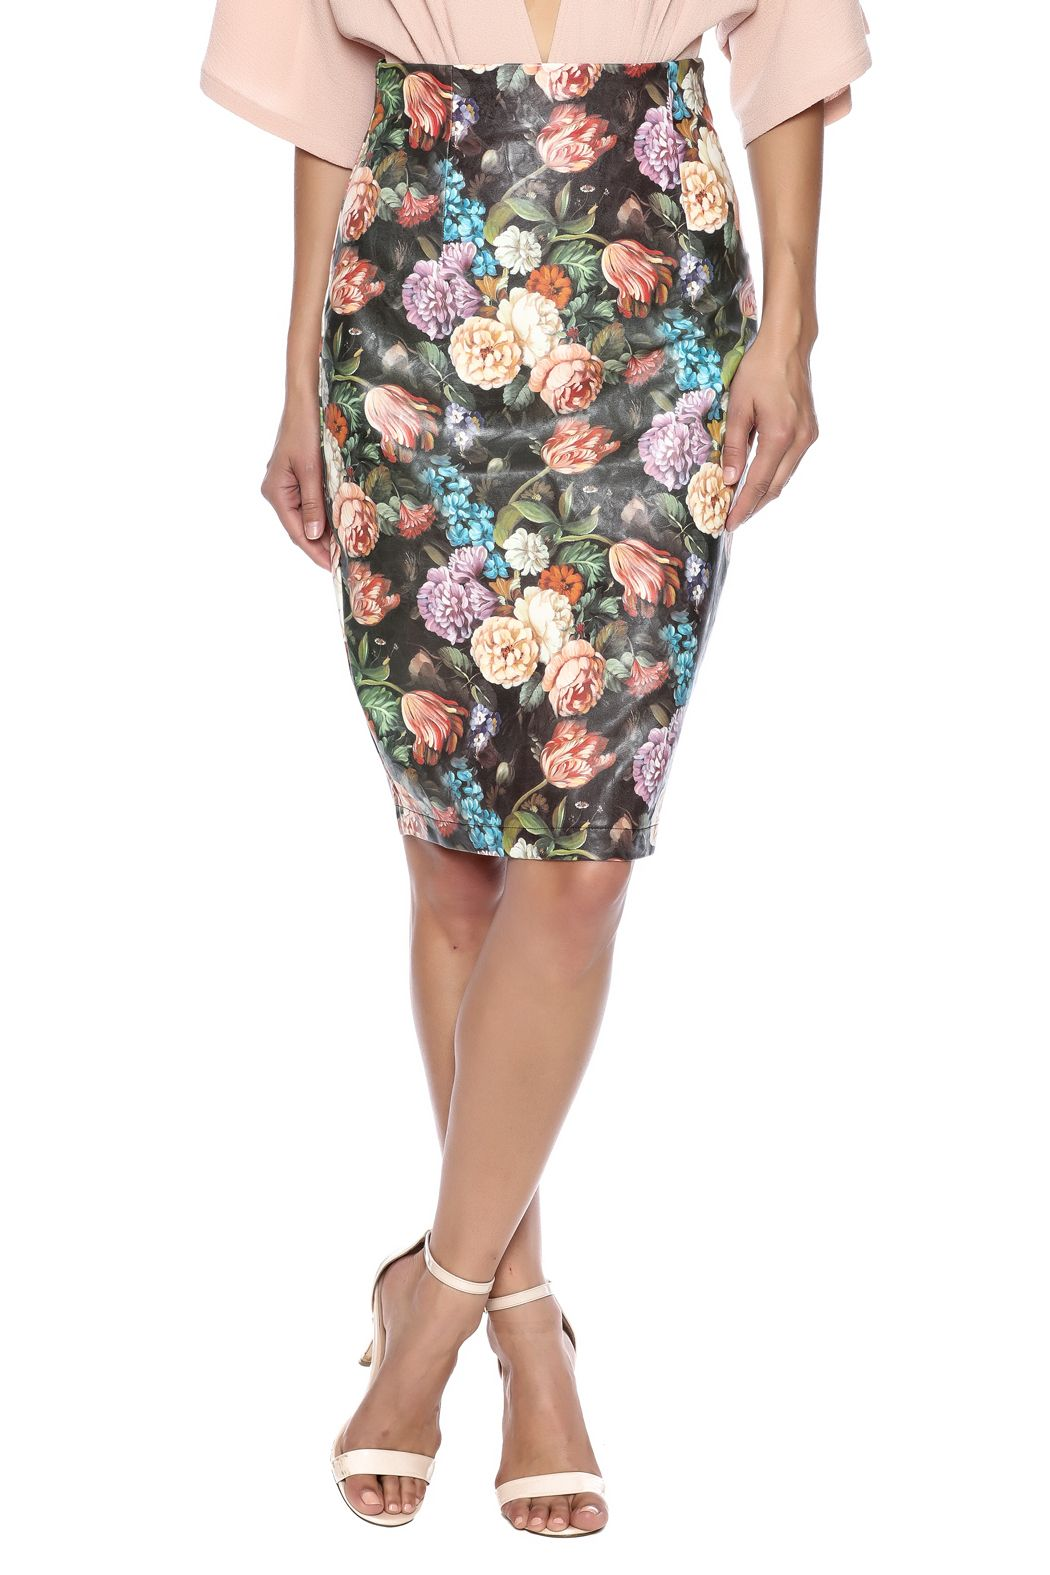 Jealous Tomato Floral Pencil Skirt | Floral pencil skirt, Printed ...